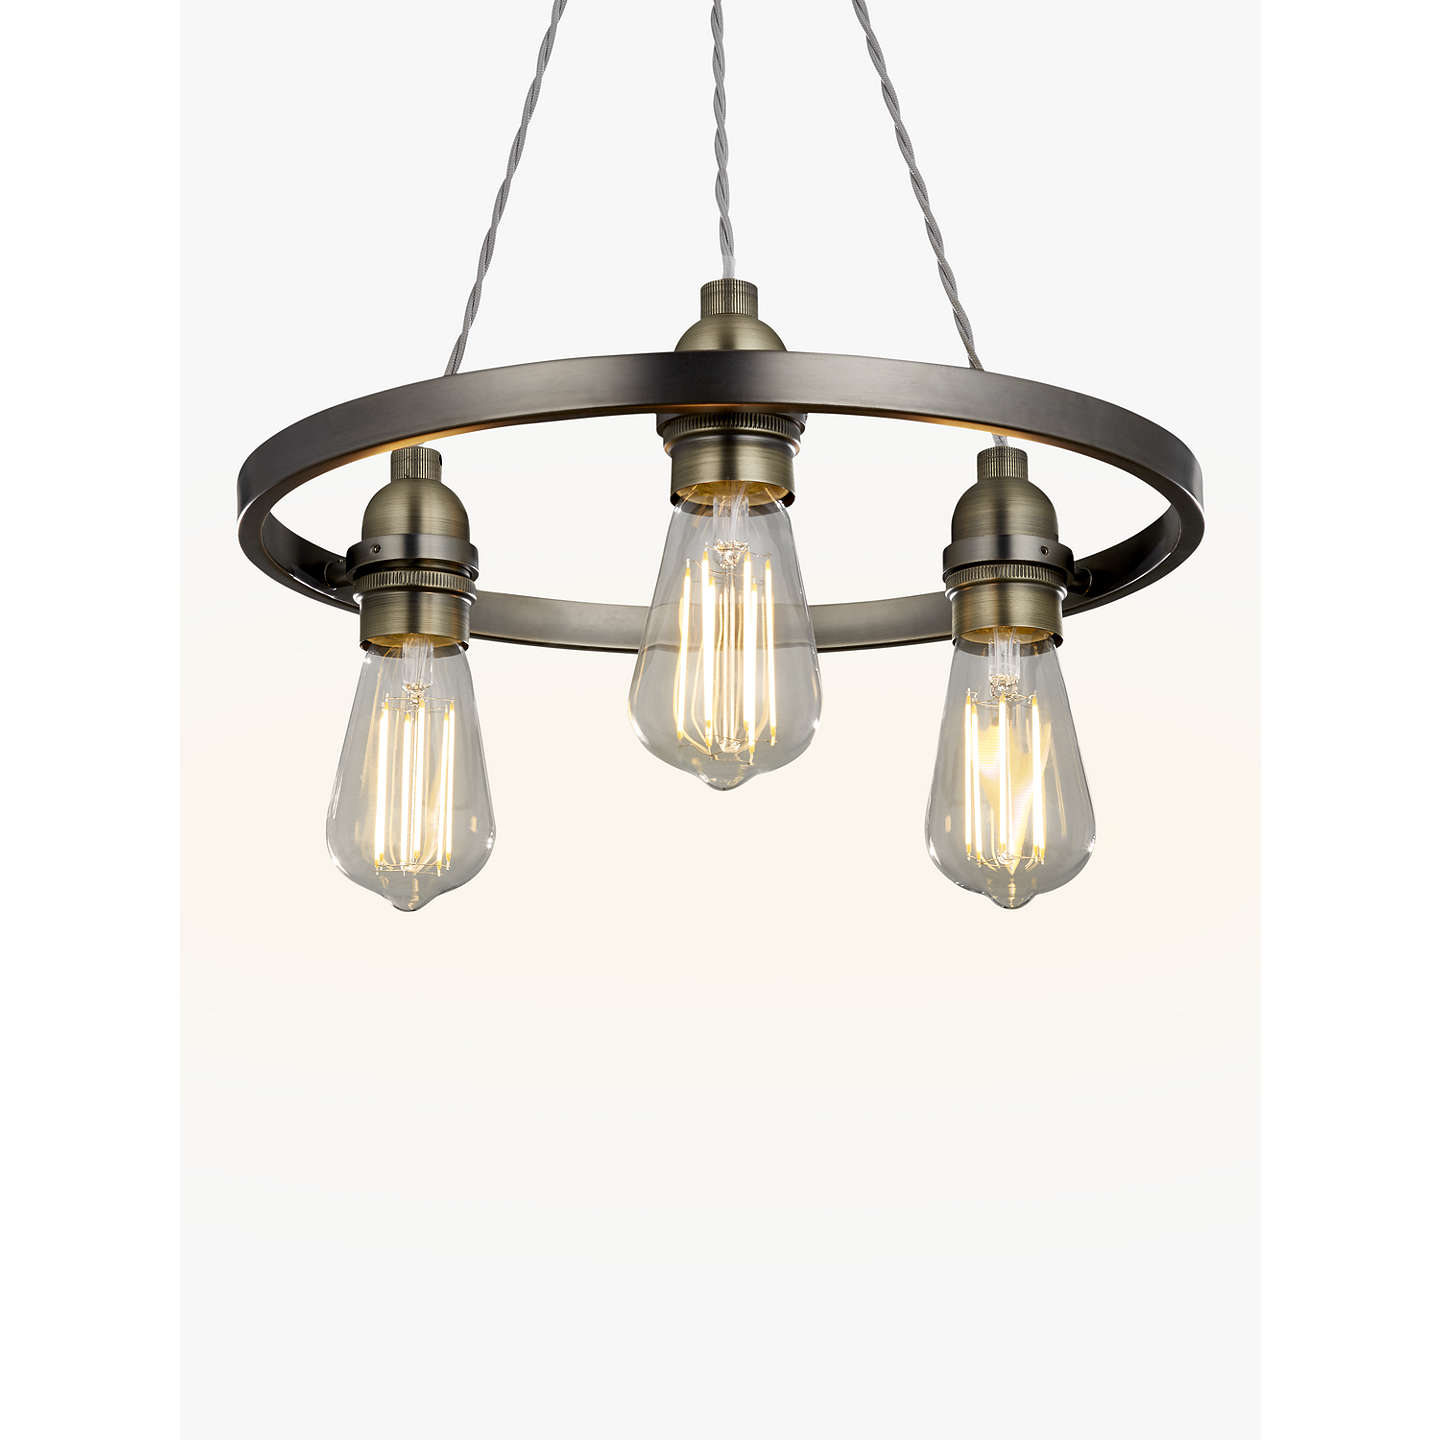 John lewis bistro hoop pendant ceiling light 3 light pewter at buyjohn lewis bistro hoop pendant ceiling light 3 light pewter online at johnlewis mozeypictures